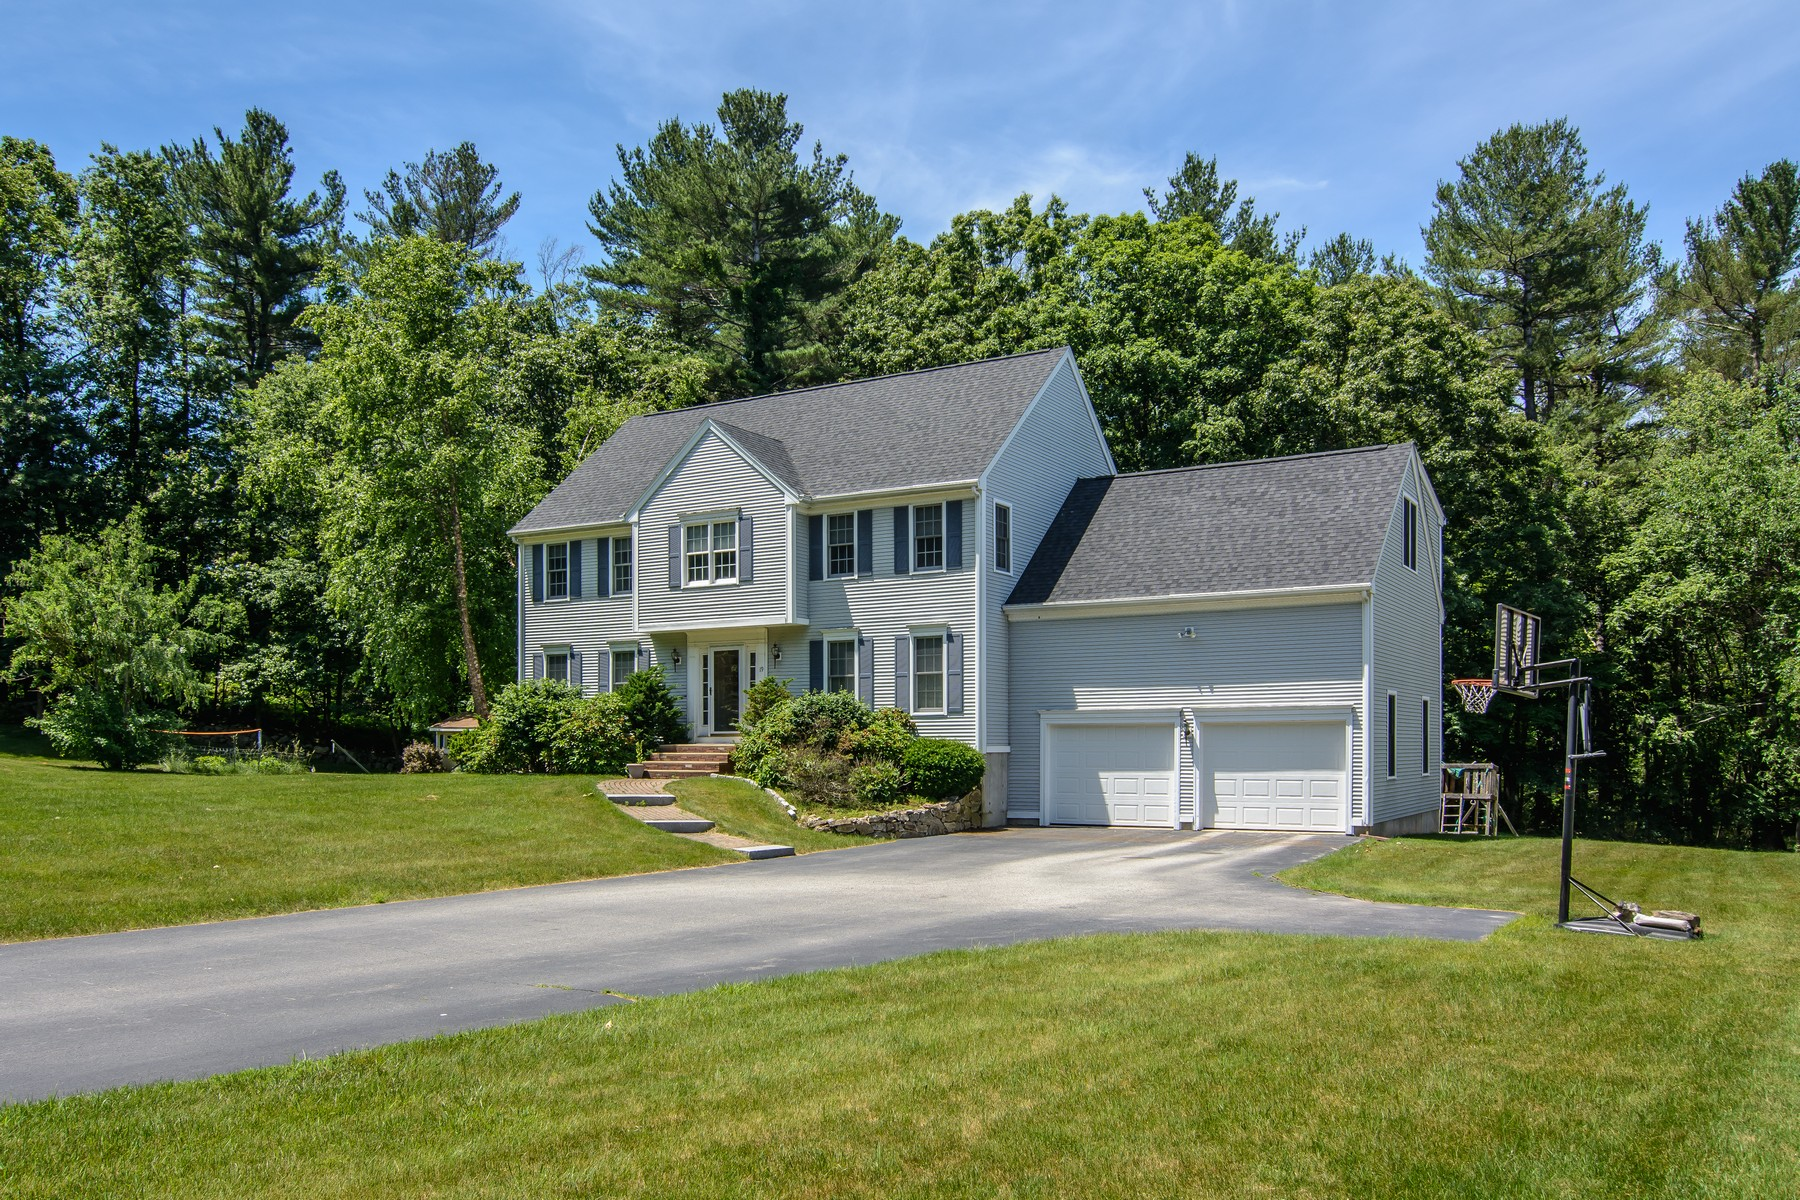 Single Family Home for Sale at Inviting Colonial On Scenic Street 19 Belknap Street Westborough, Massachusetts 01581 United States